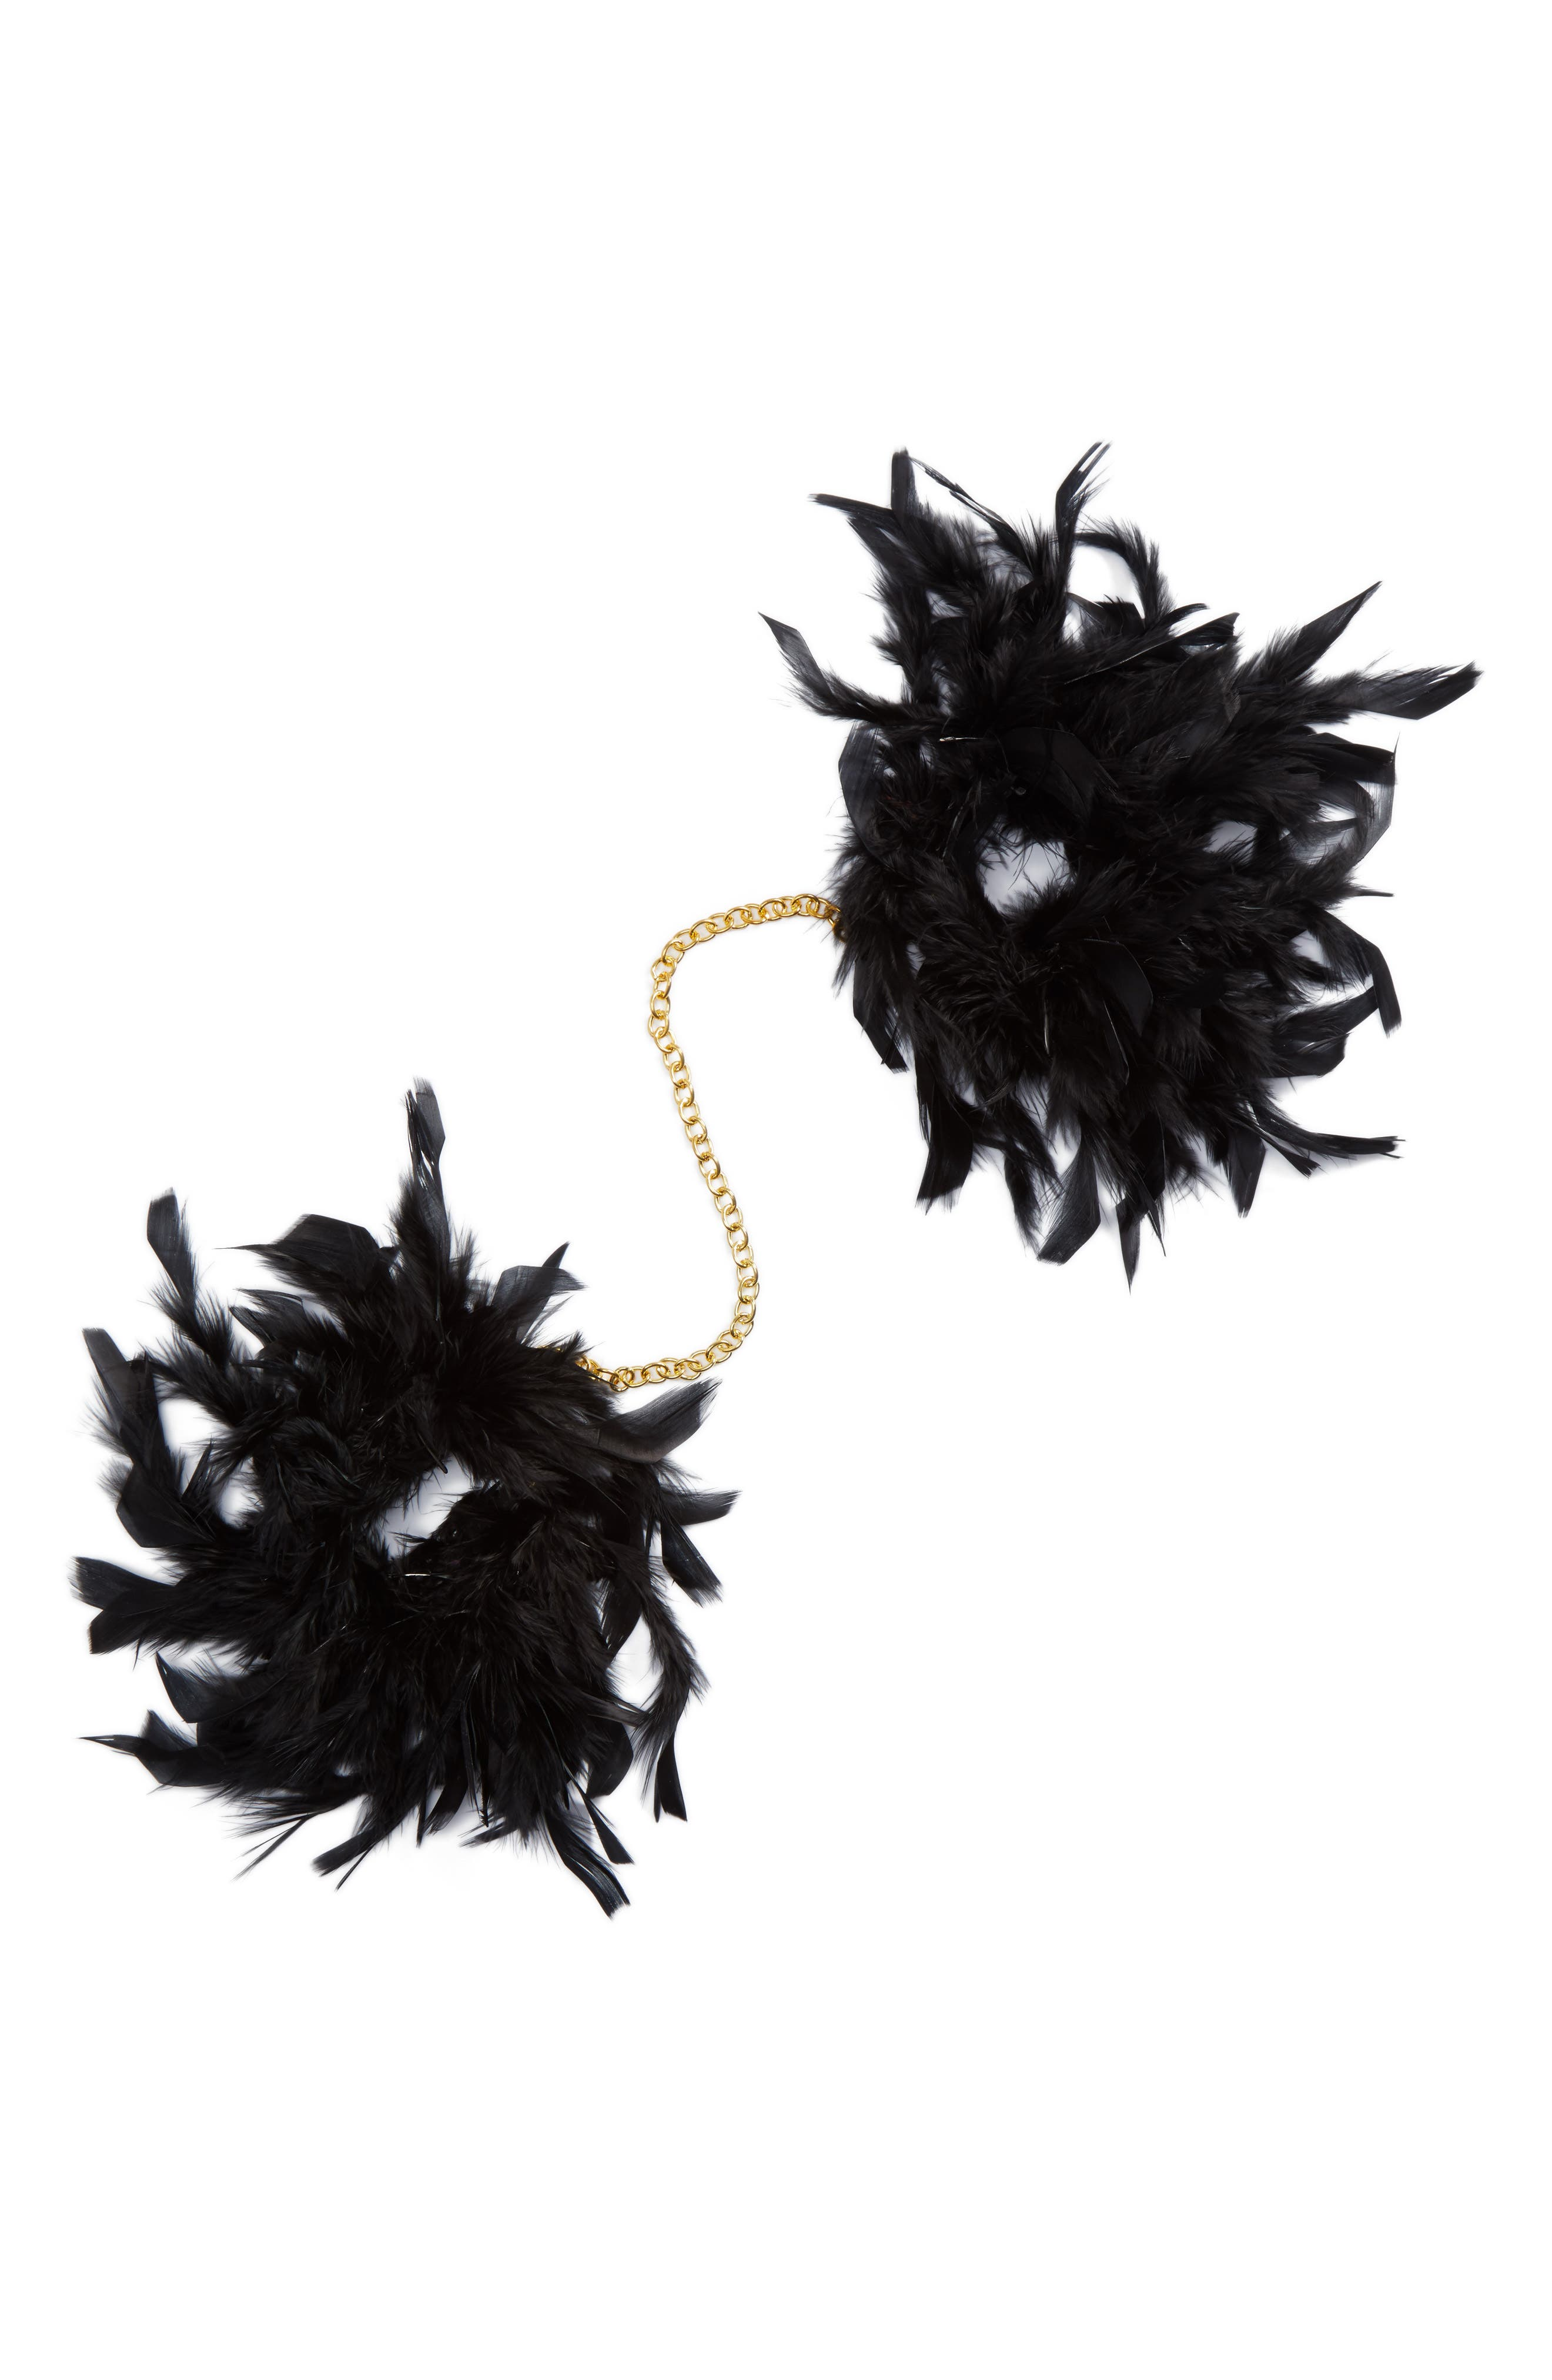 Feather Faux Handcuffs,                             Main thumbnail 1, color,                             001